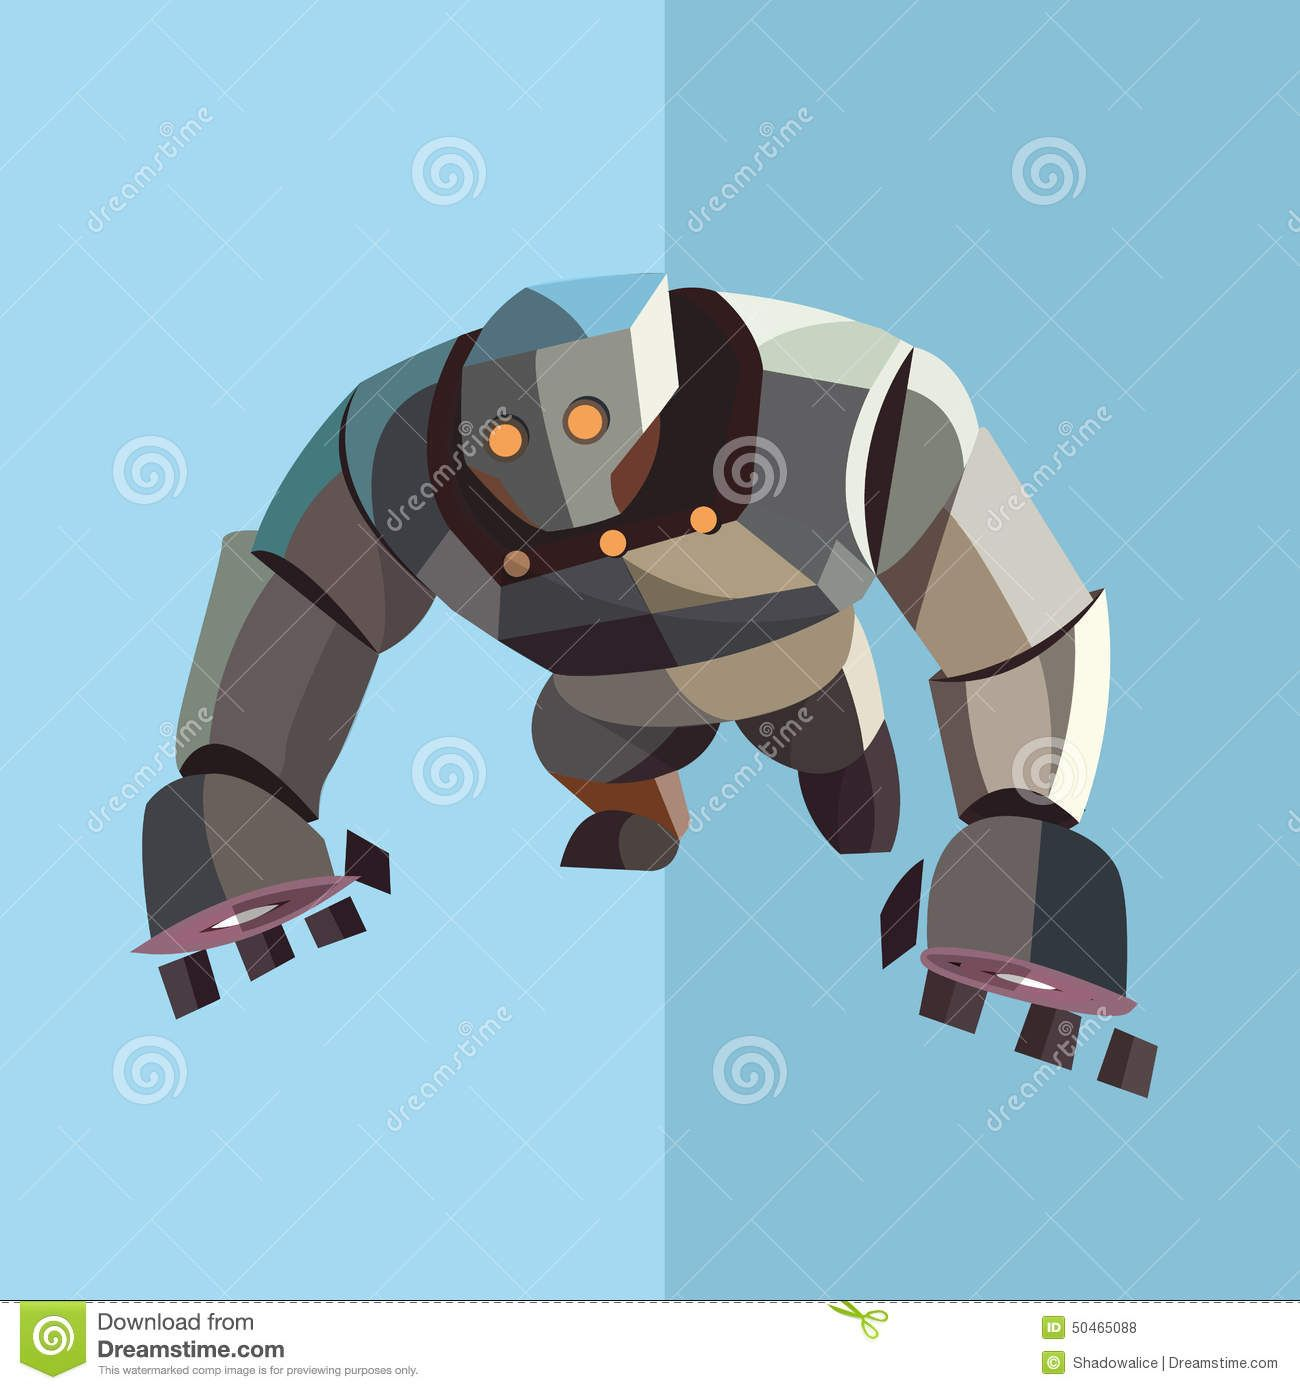 Robot Cartoon Icon Great For Any Use. Vector EPS10. Stock Vector - Image: 50465088